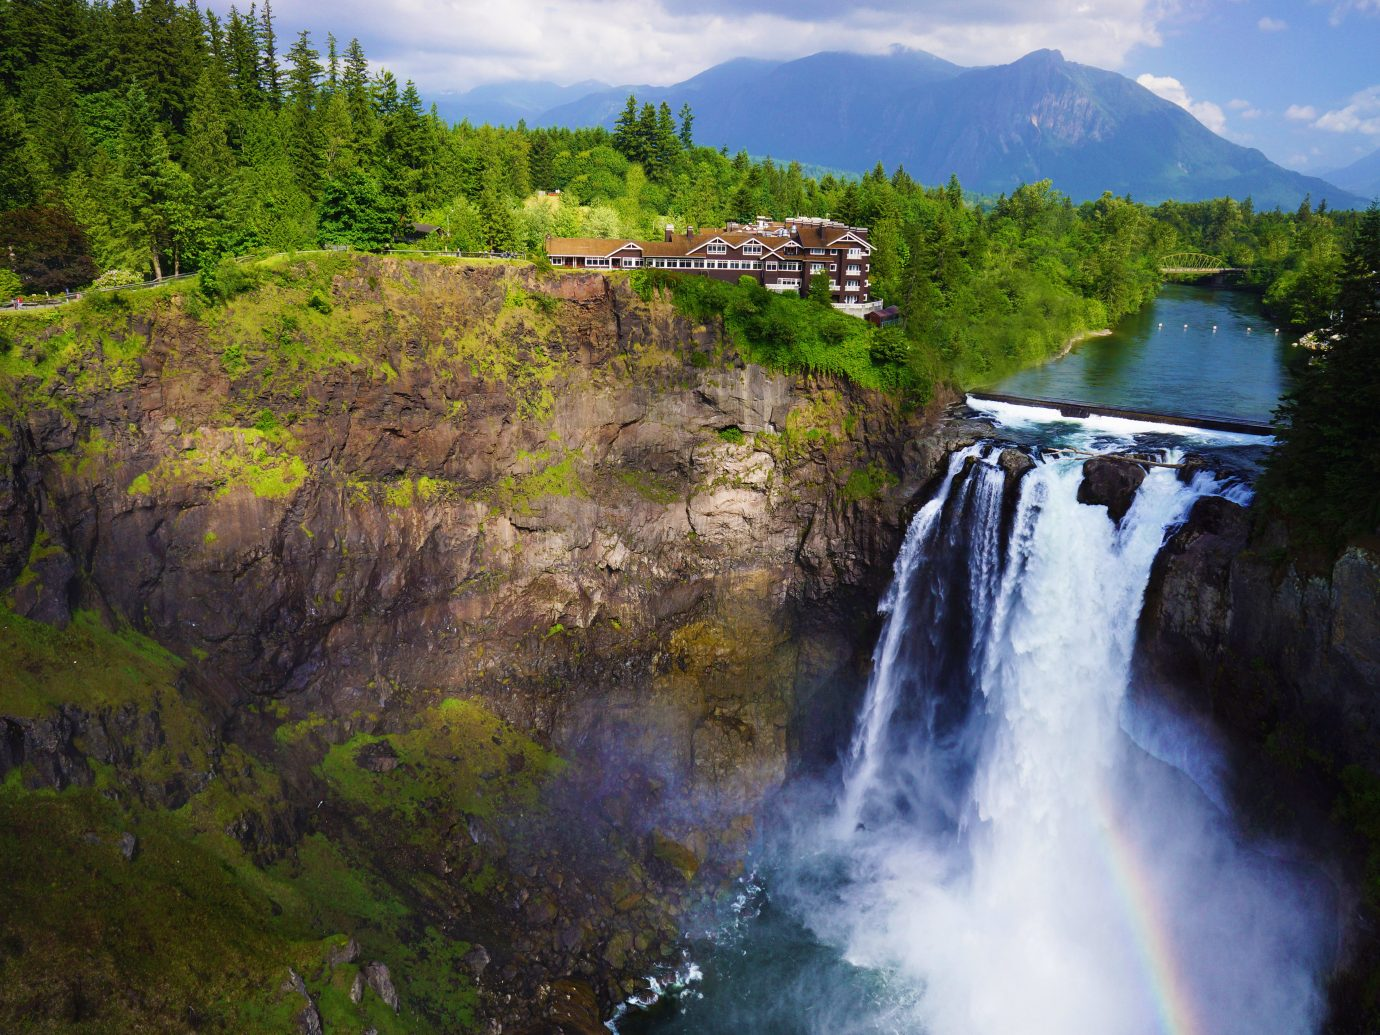 Country Hotels Lake Lakes + Rivers Mountains Nature Outdoors tree outdoor water Waterfall body of water wilderness mountain water feature River reflection landscape stream fjord national park autumn Forest surrounded wooded